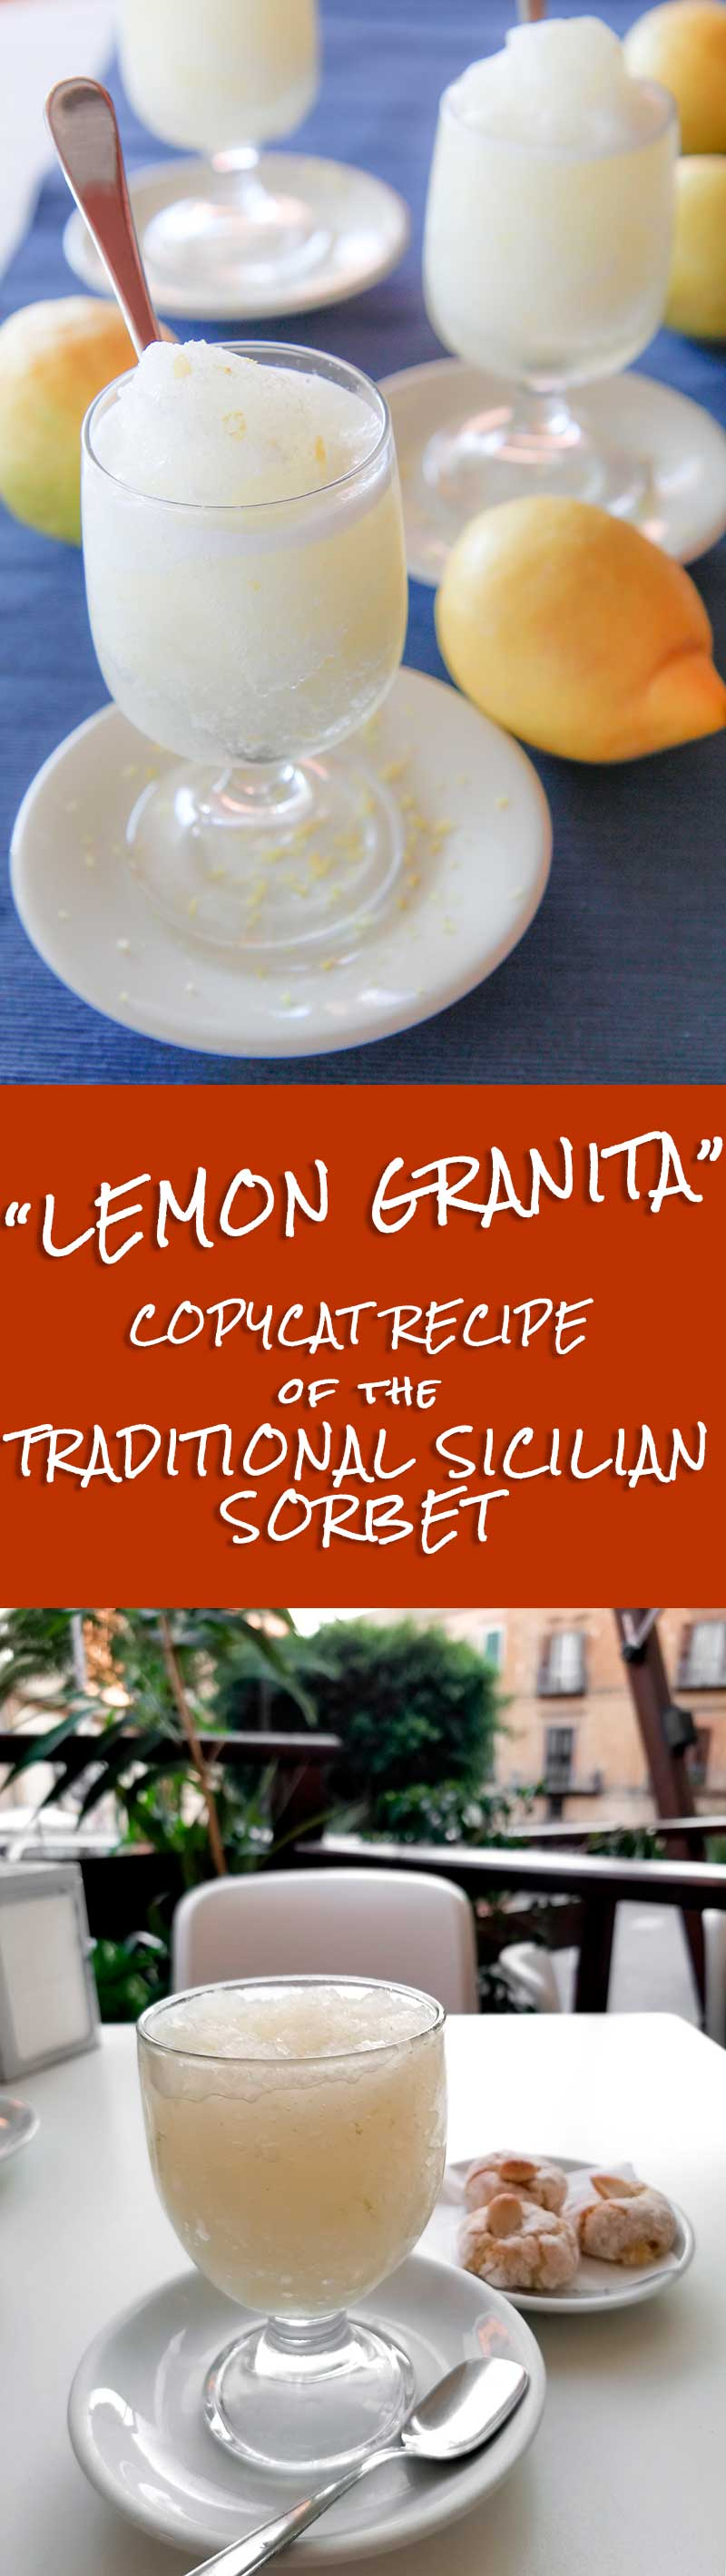 LEMON GRANITA - traditional Sicilian sorbet recipe